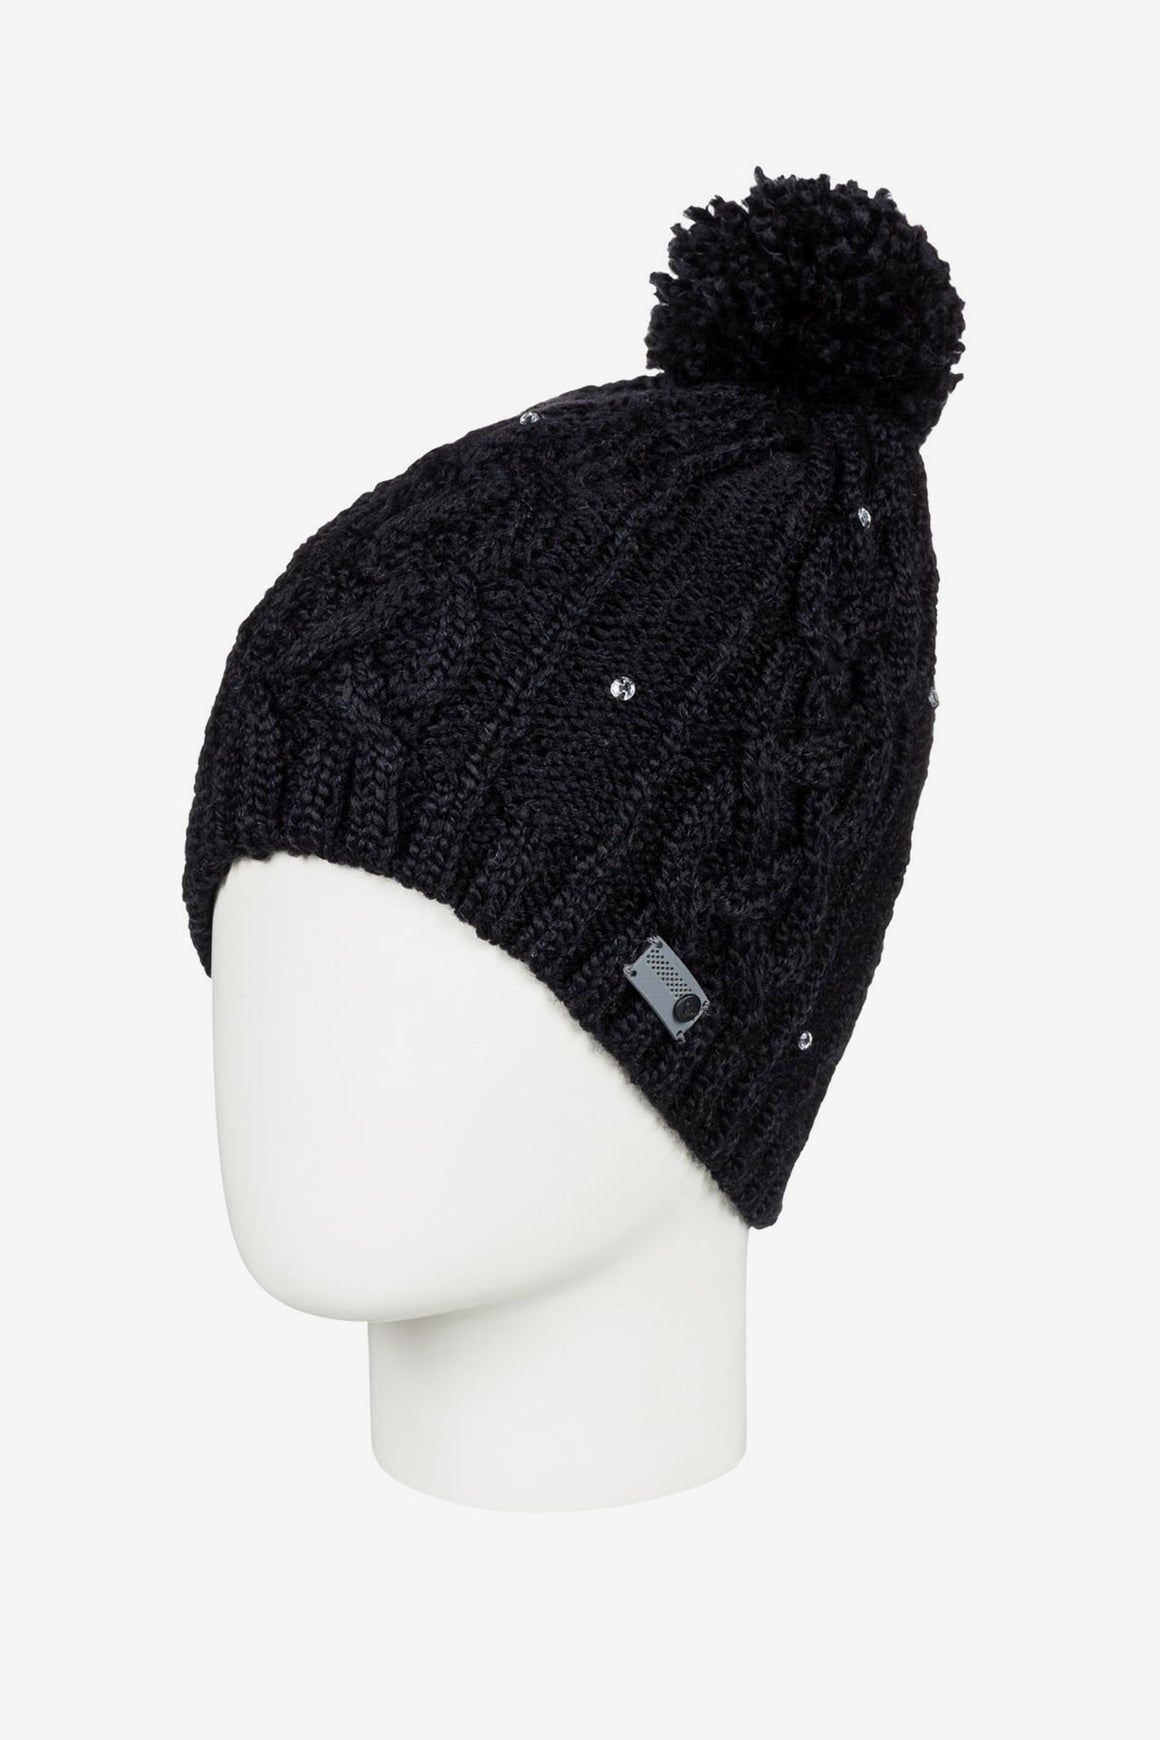 Roxy Shooting Star Hat - Black